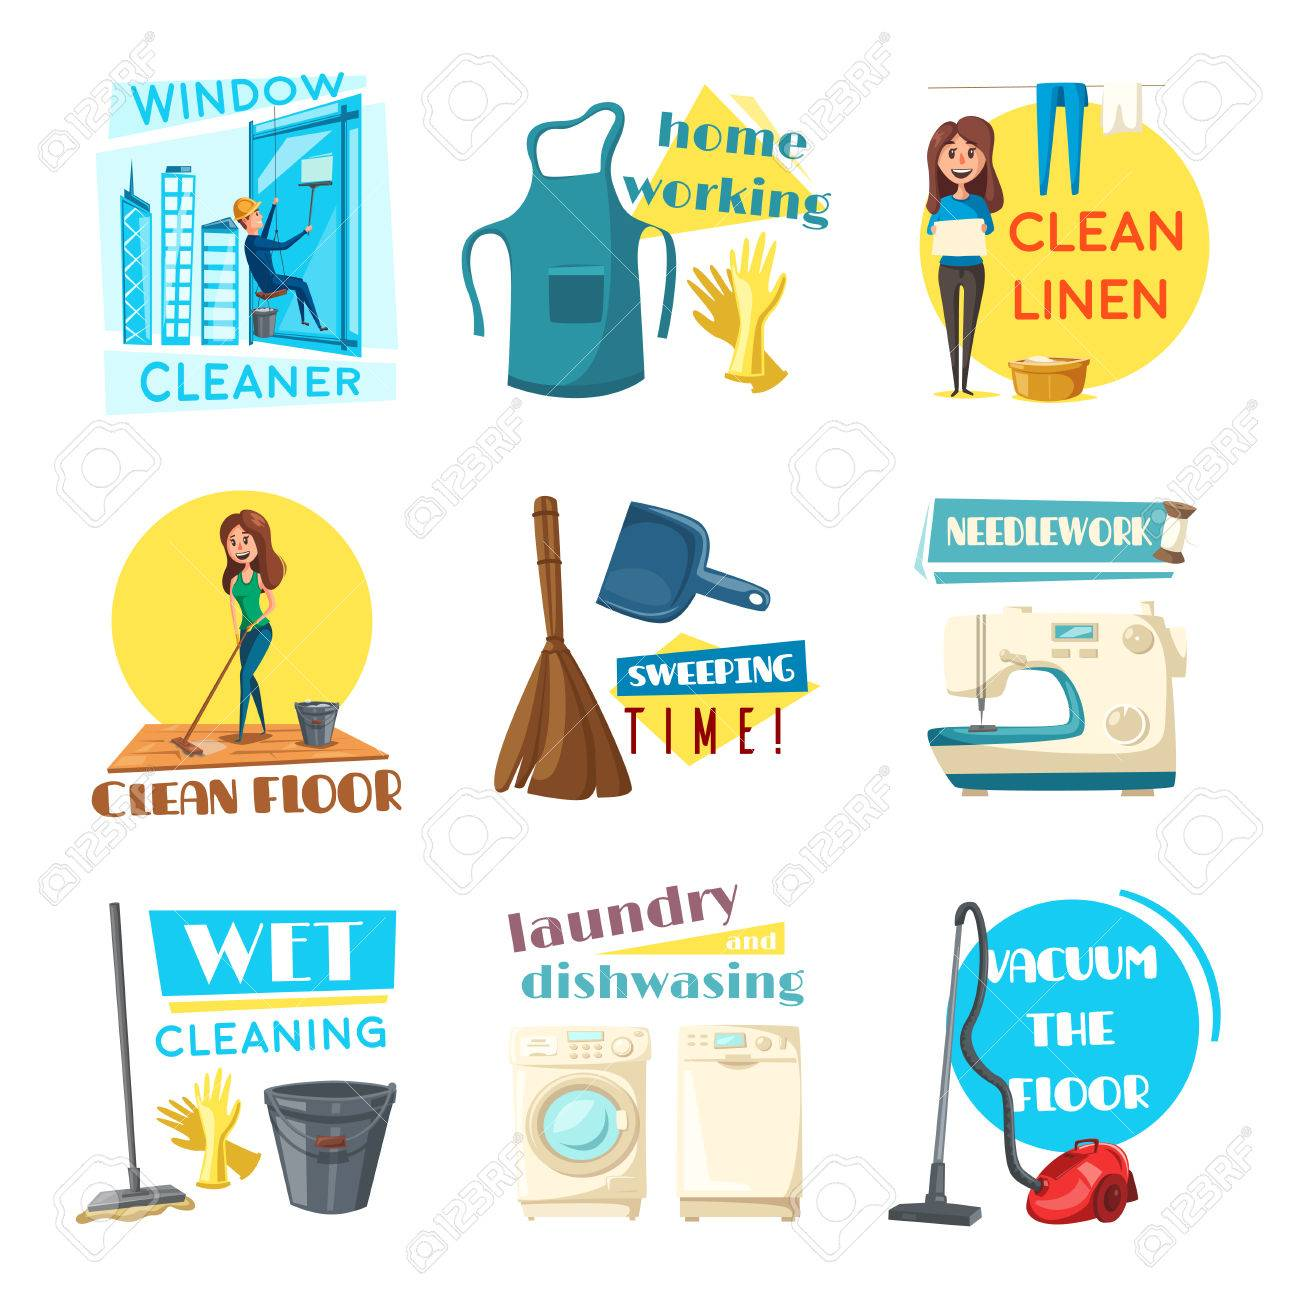 Home cleaning and homework vector flat design icons set woman washing dishes at kitchen sink